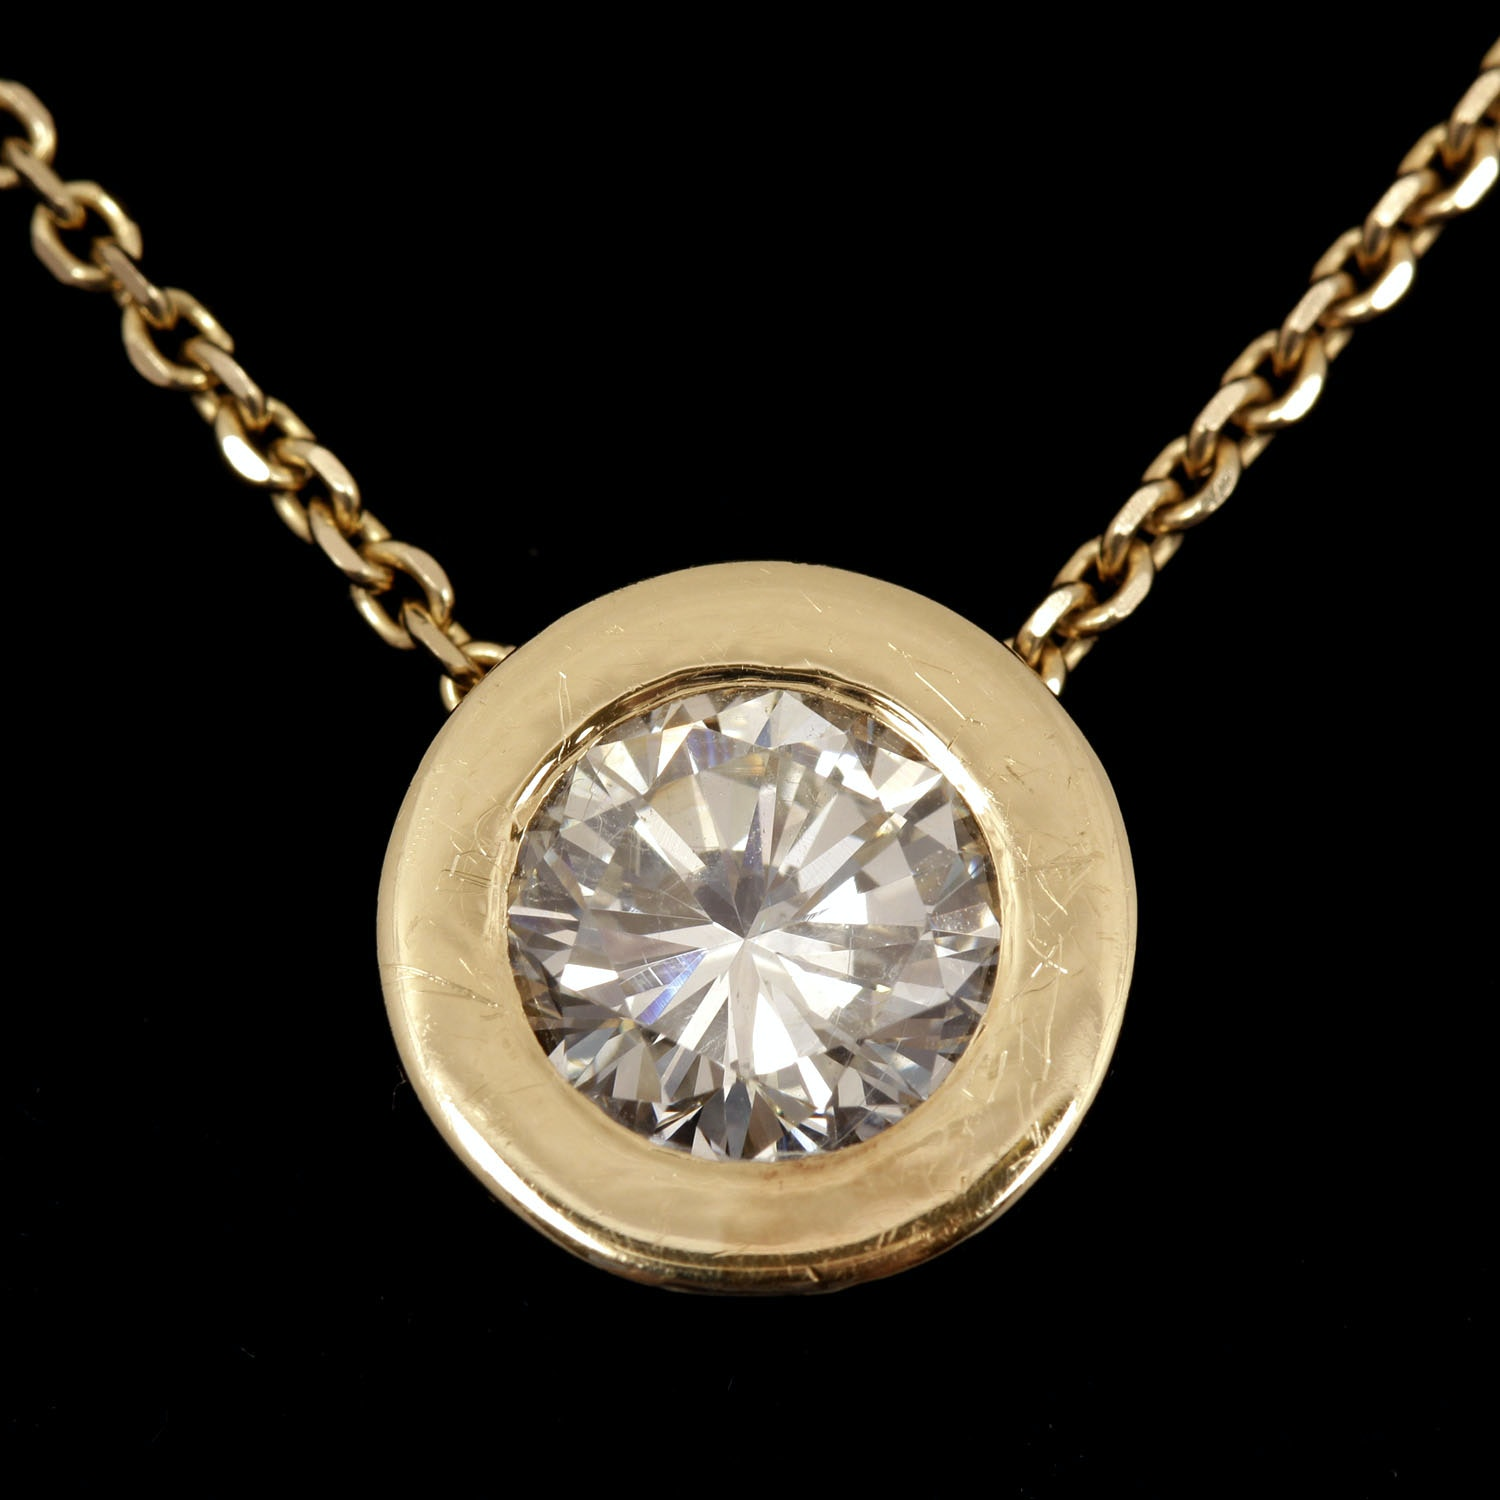 2.95 Carat Diamond Solitaire Pendant on 14K Yellow Gold Chain